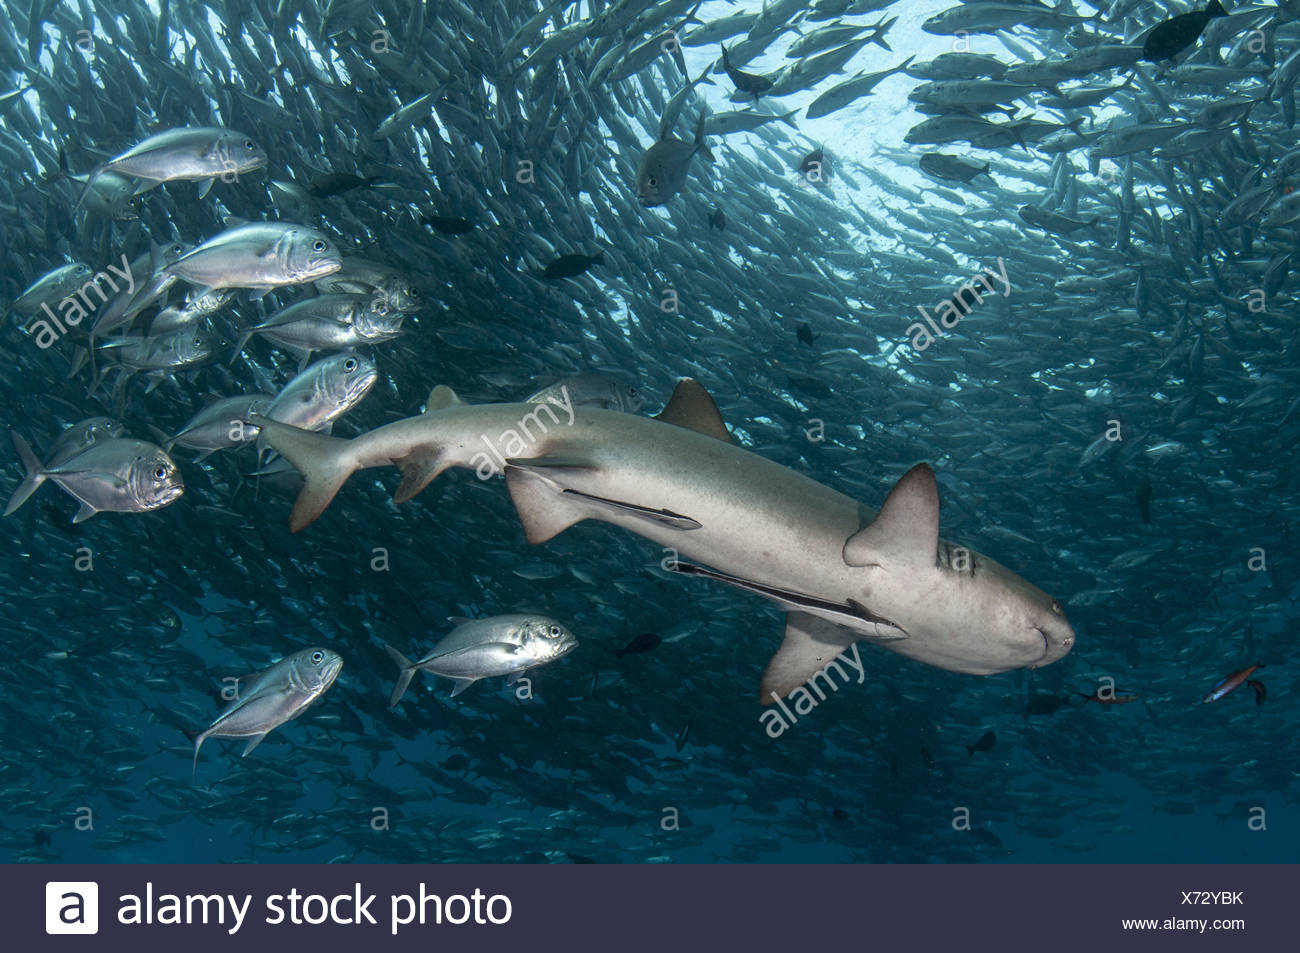 Whitetip reef shark entouré par Big-eye carangues (Triaenodon obesus), (Caranx sexfasciatus) Photo Stock